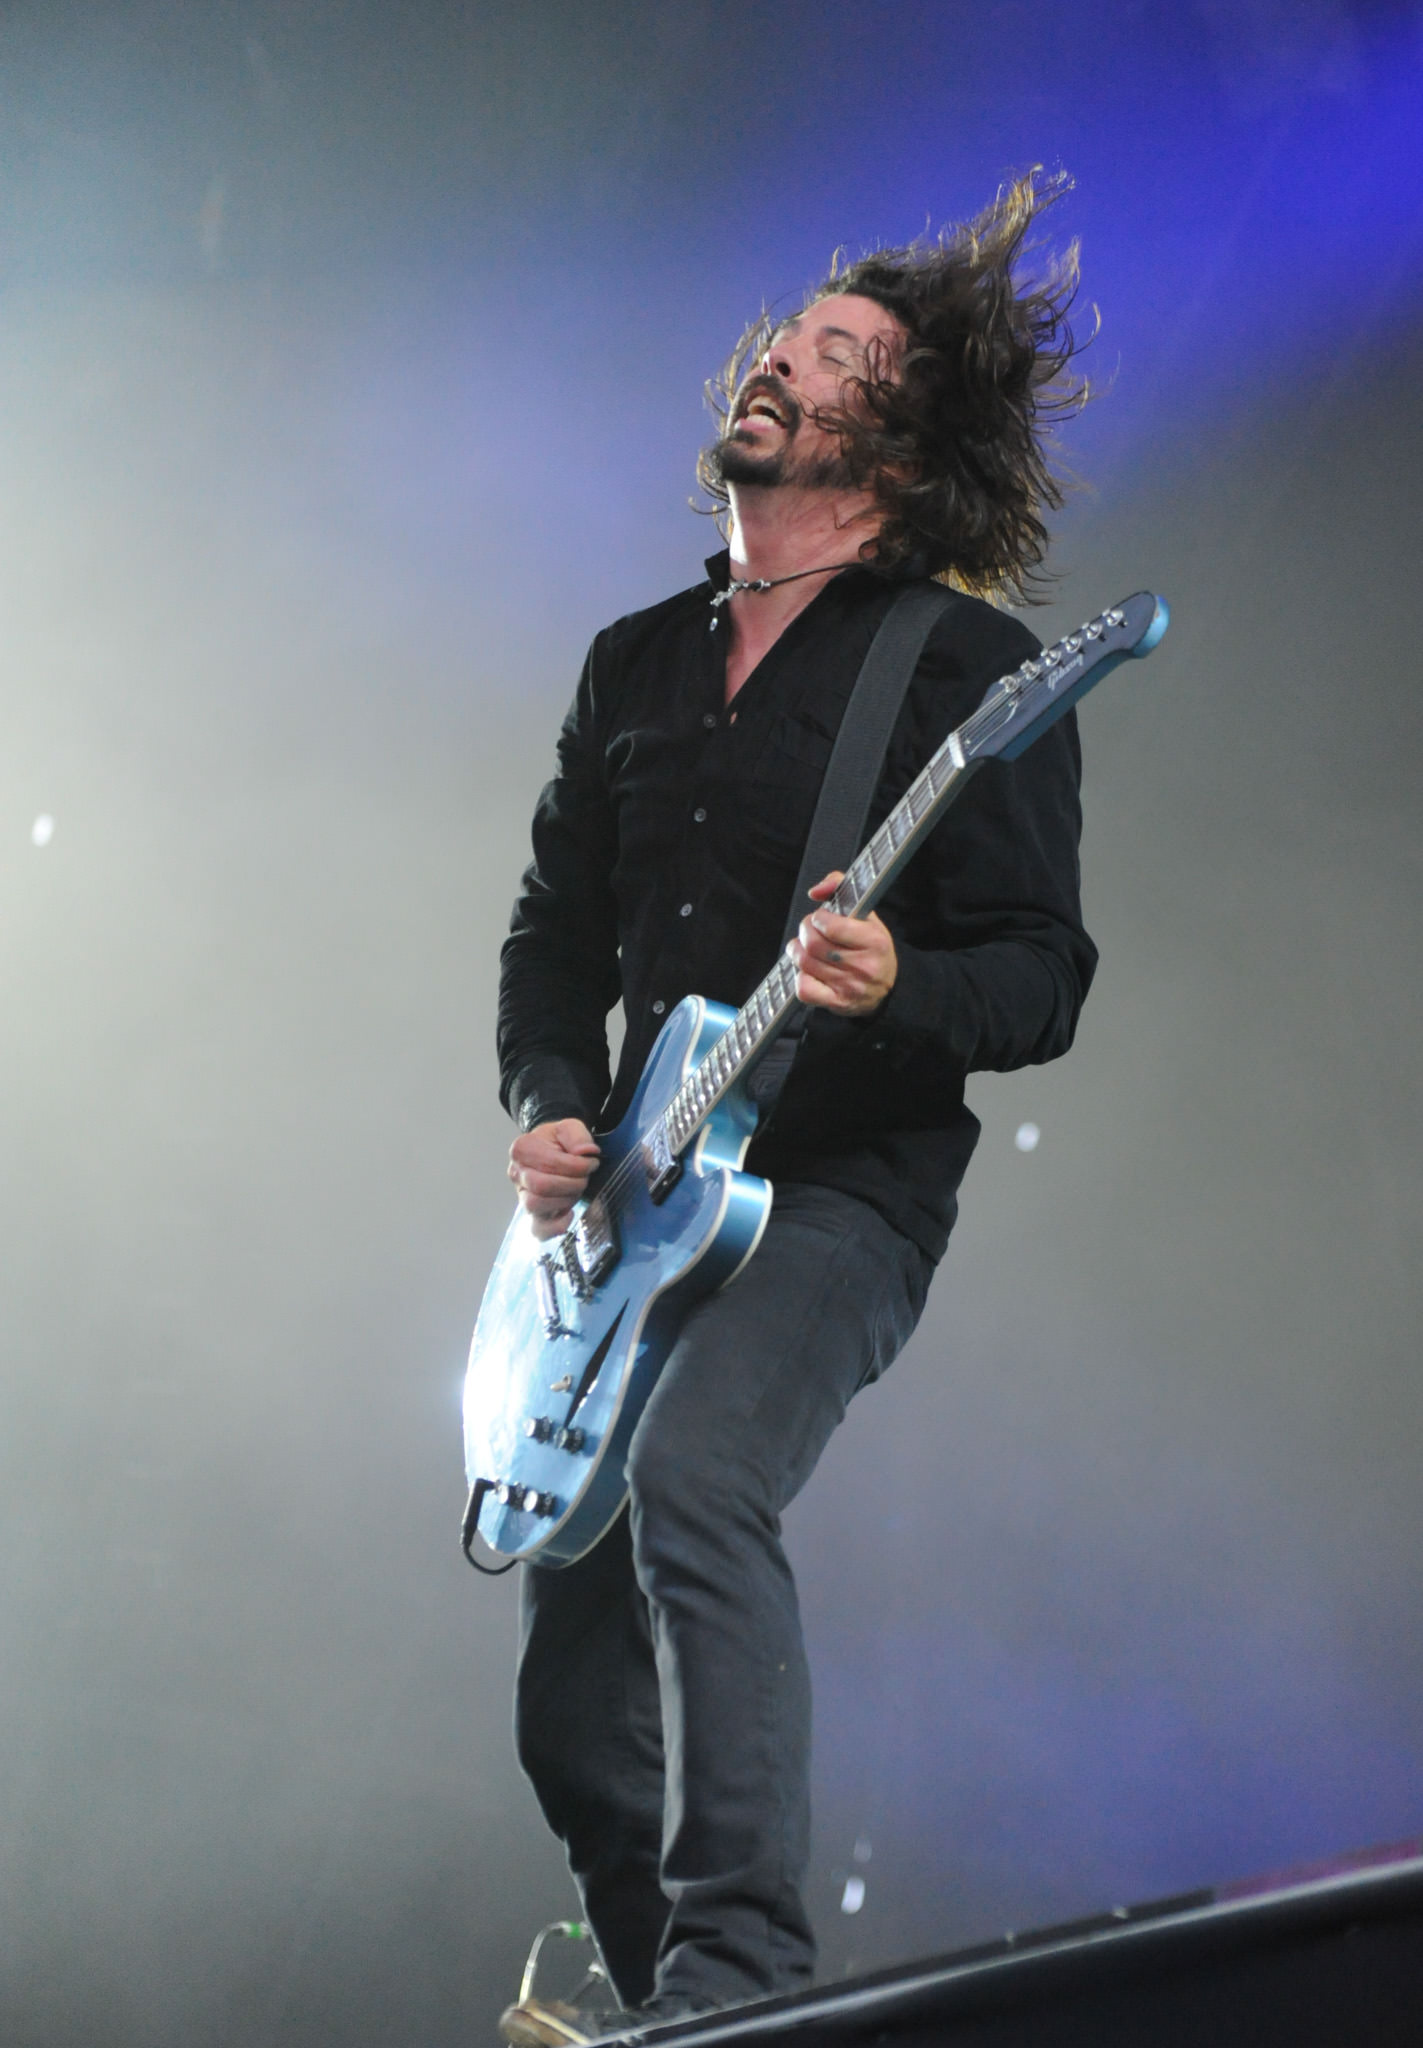 dave-grohl-foo-fighters-t-in-the-park-live.jpg